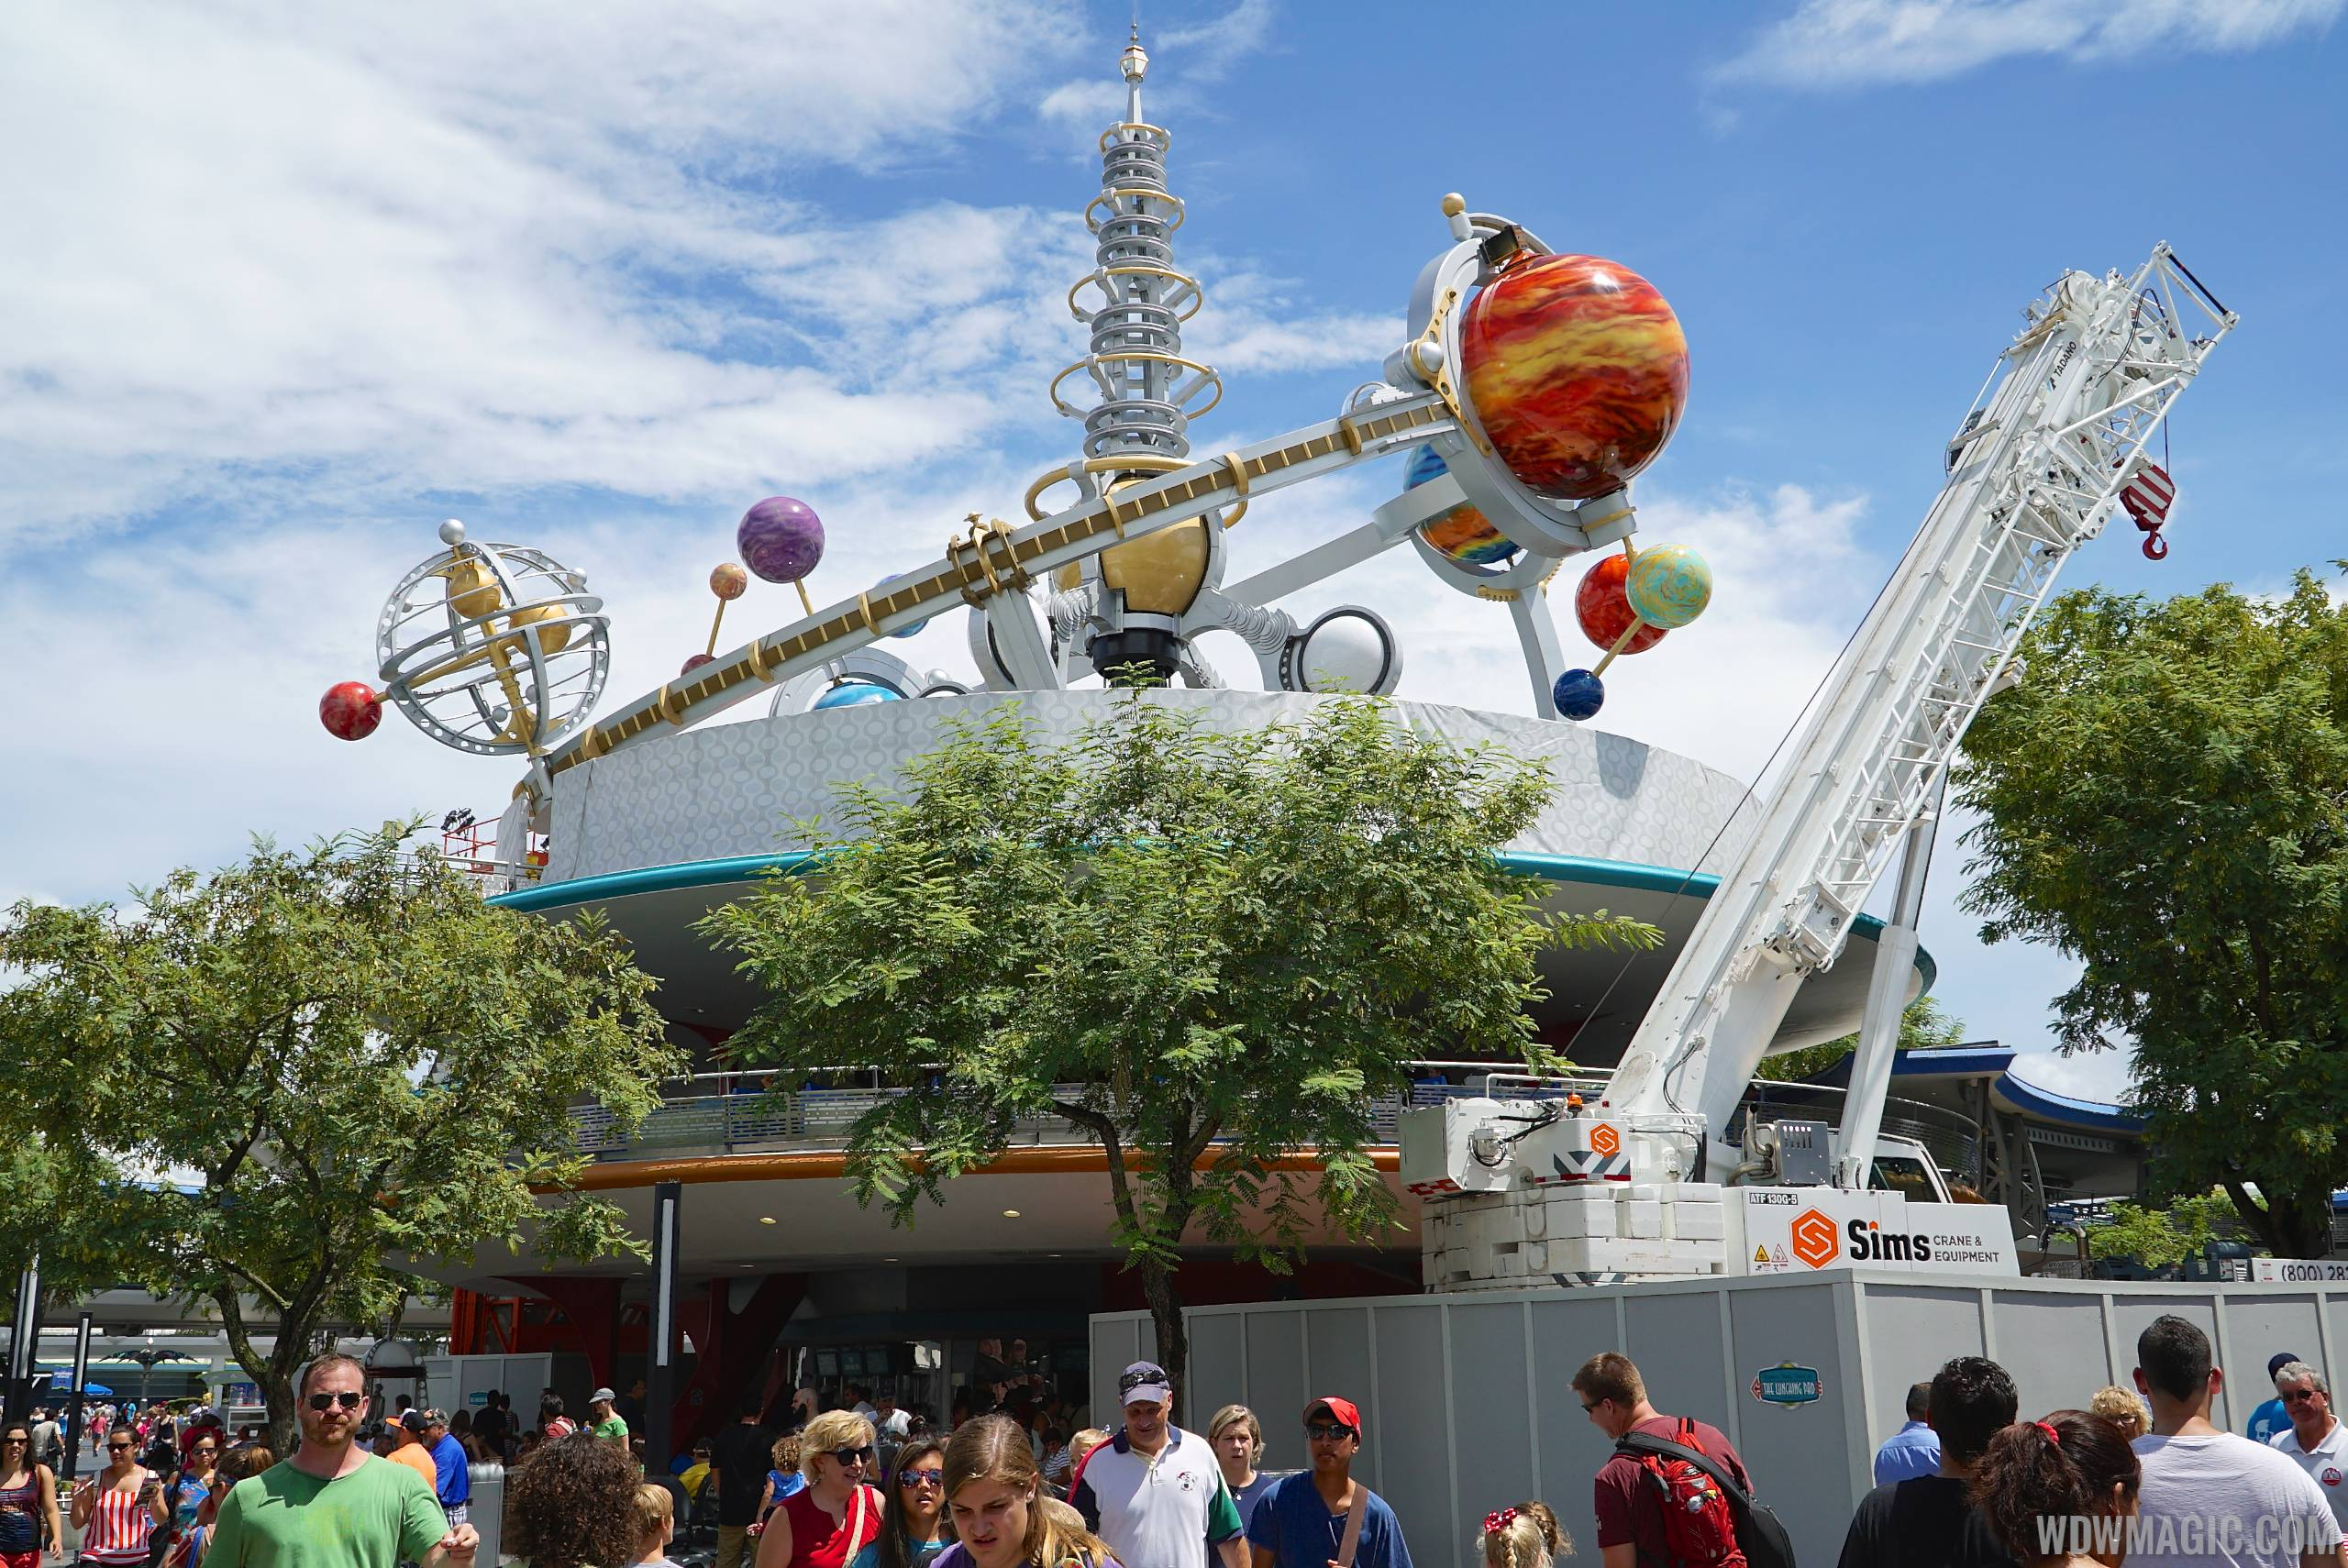 Planets are back at the Astro Orbitor